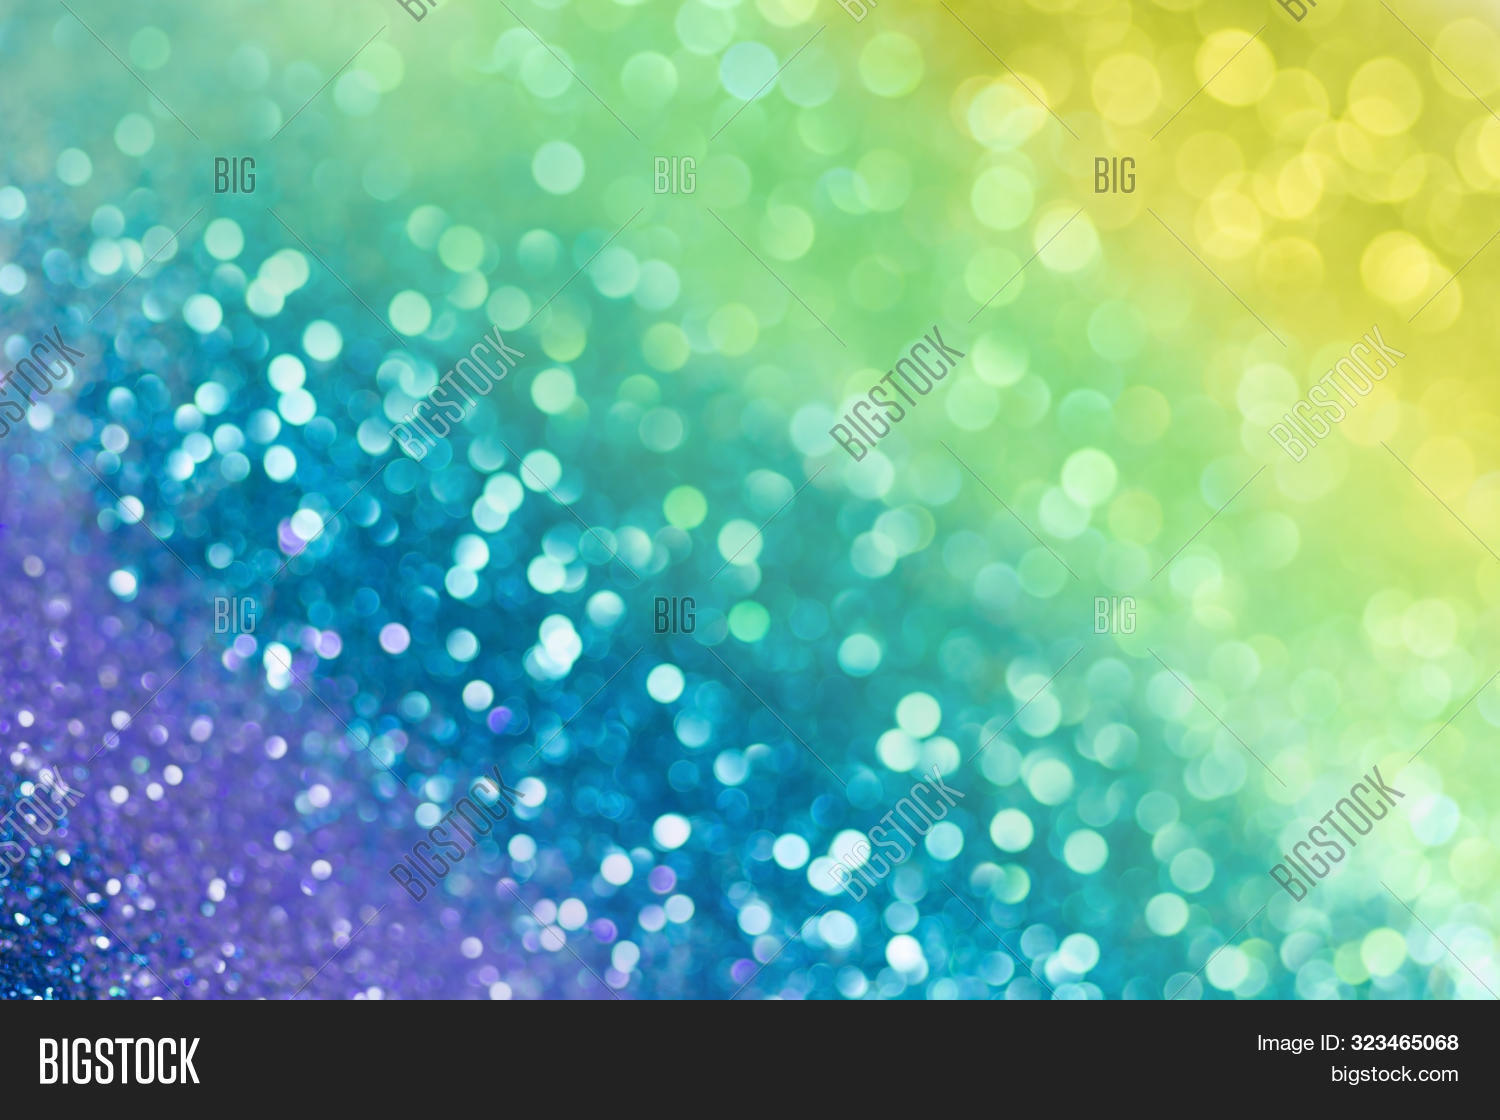 abstract,art,backdrop,background,beautiful,black,blur,blurred,blurry,bokeh,bright,celebration,circle,city,color,colorful,concept,dark,decoration,defocused,design,effect,festive,glamour,glitter,glow,glowing,holiday,illuminated,light,magic,night,nightlife,pattern,red,round,shine,shiny,space,sparkle,spot,street,texture,textured,urban,vibrant,vivid,yellow